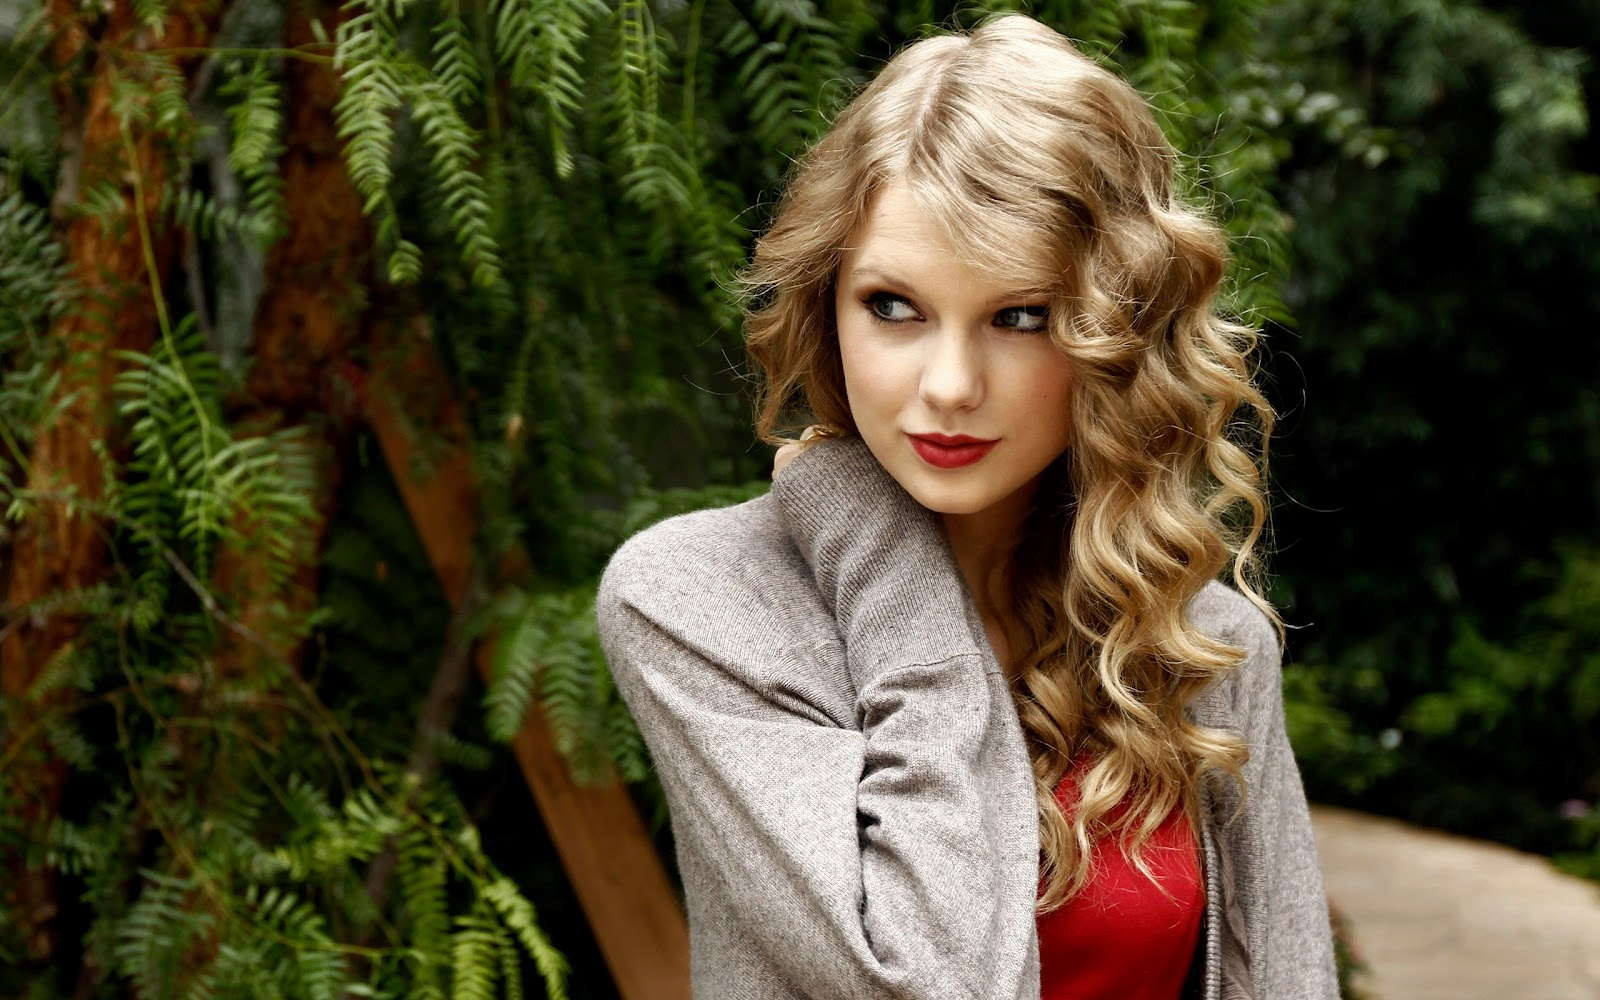 Taylor Swift Hd Wallpaper Never Grow Up Taylor Swift Album Cover 1600x1000 Download Hd Wallpaper Wallpapertip